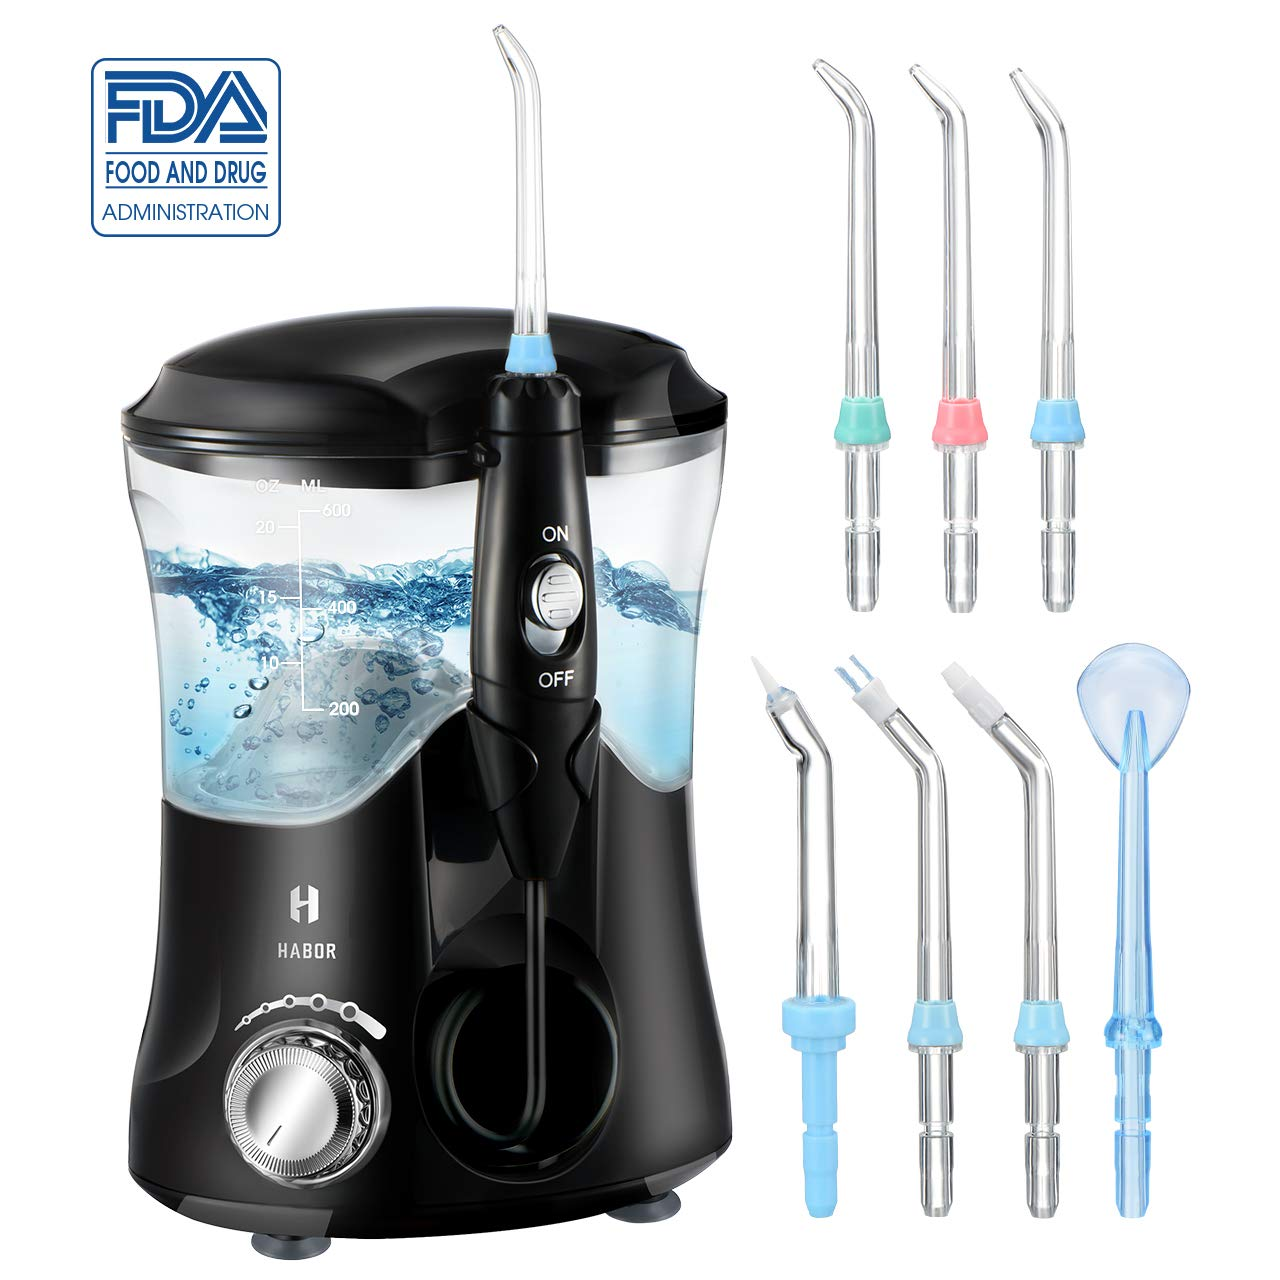 Habor Upgraded Water Flosser, FDA 600ML Water Dental Flosser with 7 Multifunction Tips for Family Use, Leak Proof Oral Irrigator with 10 Pressure Settings for Braces Teeth Care